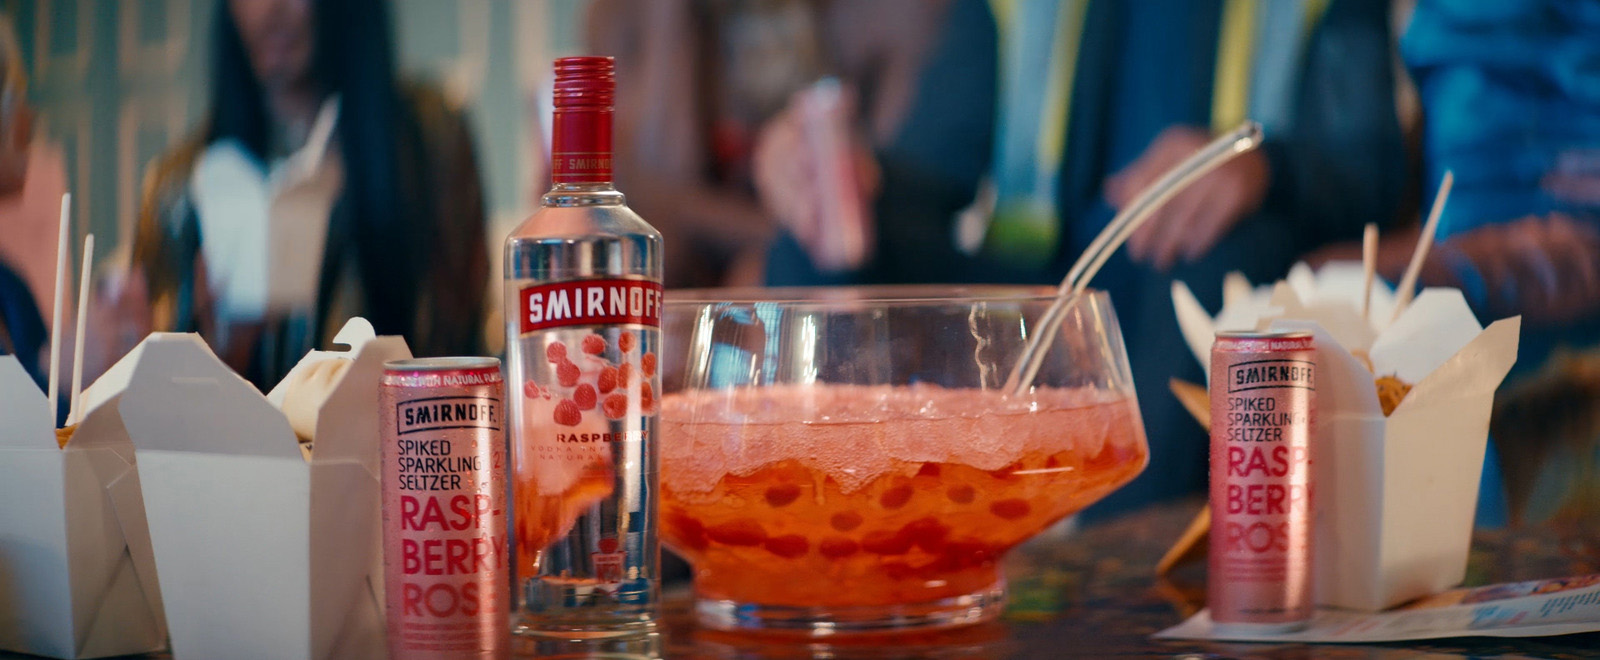 Smirnoff Raspberry and Smirnoff Raspberry Rosé Seltzer steal the show as the perfect pairings for Chinese takeout at Smirnoff's holiday party.